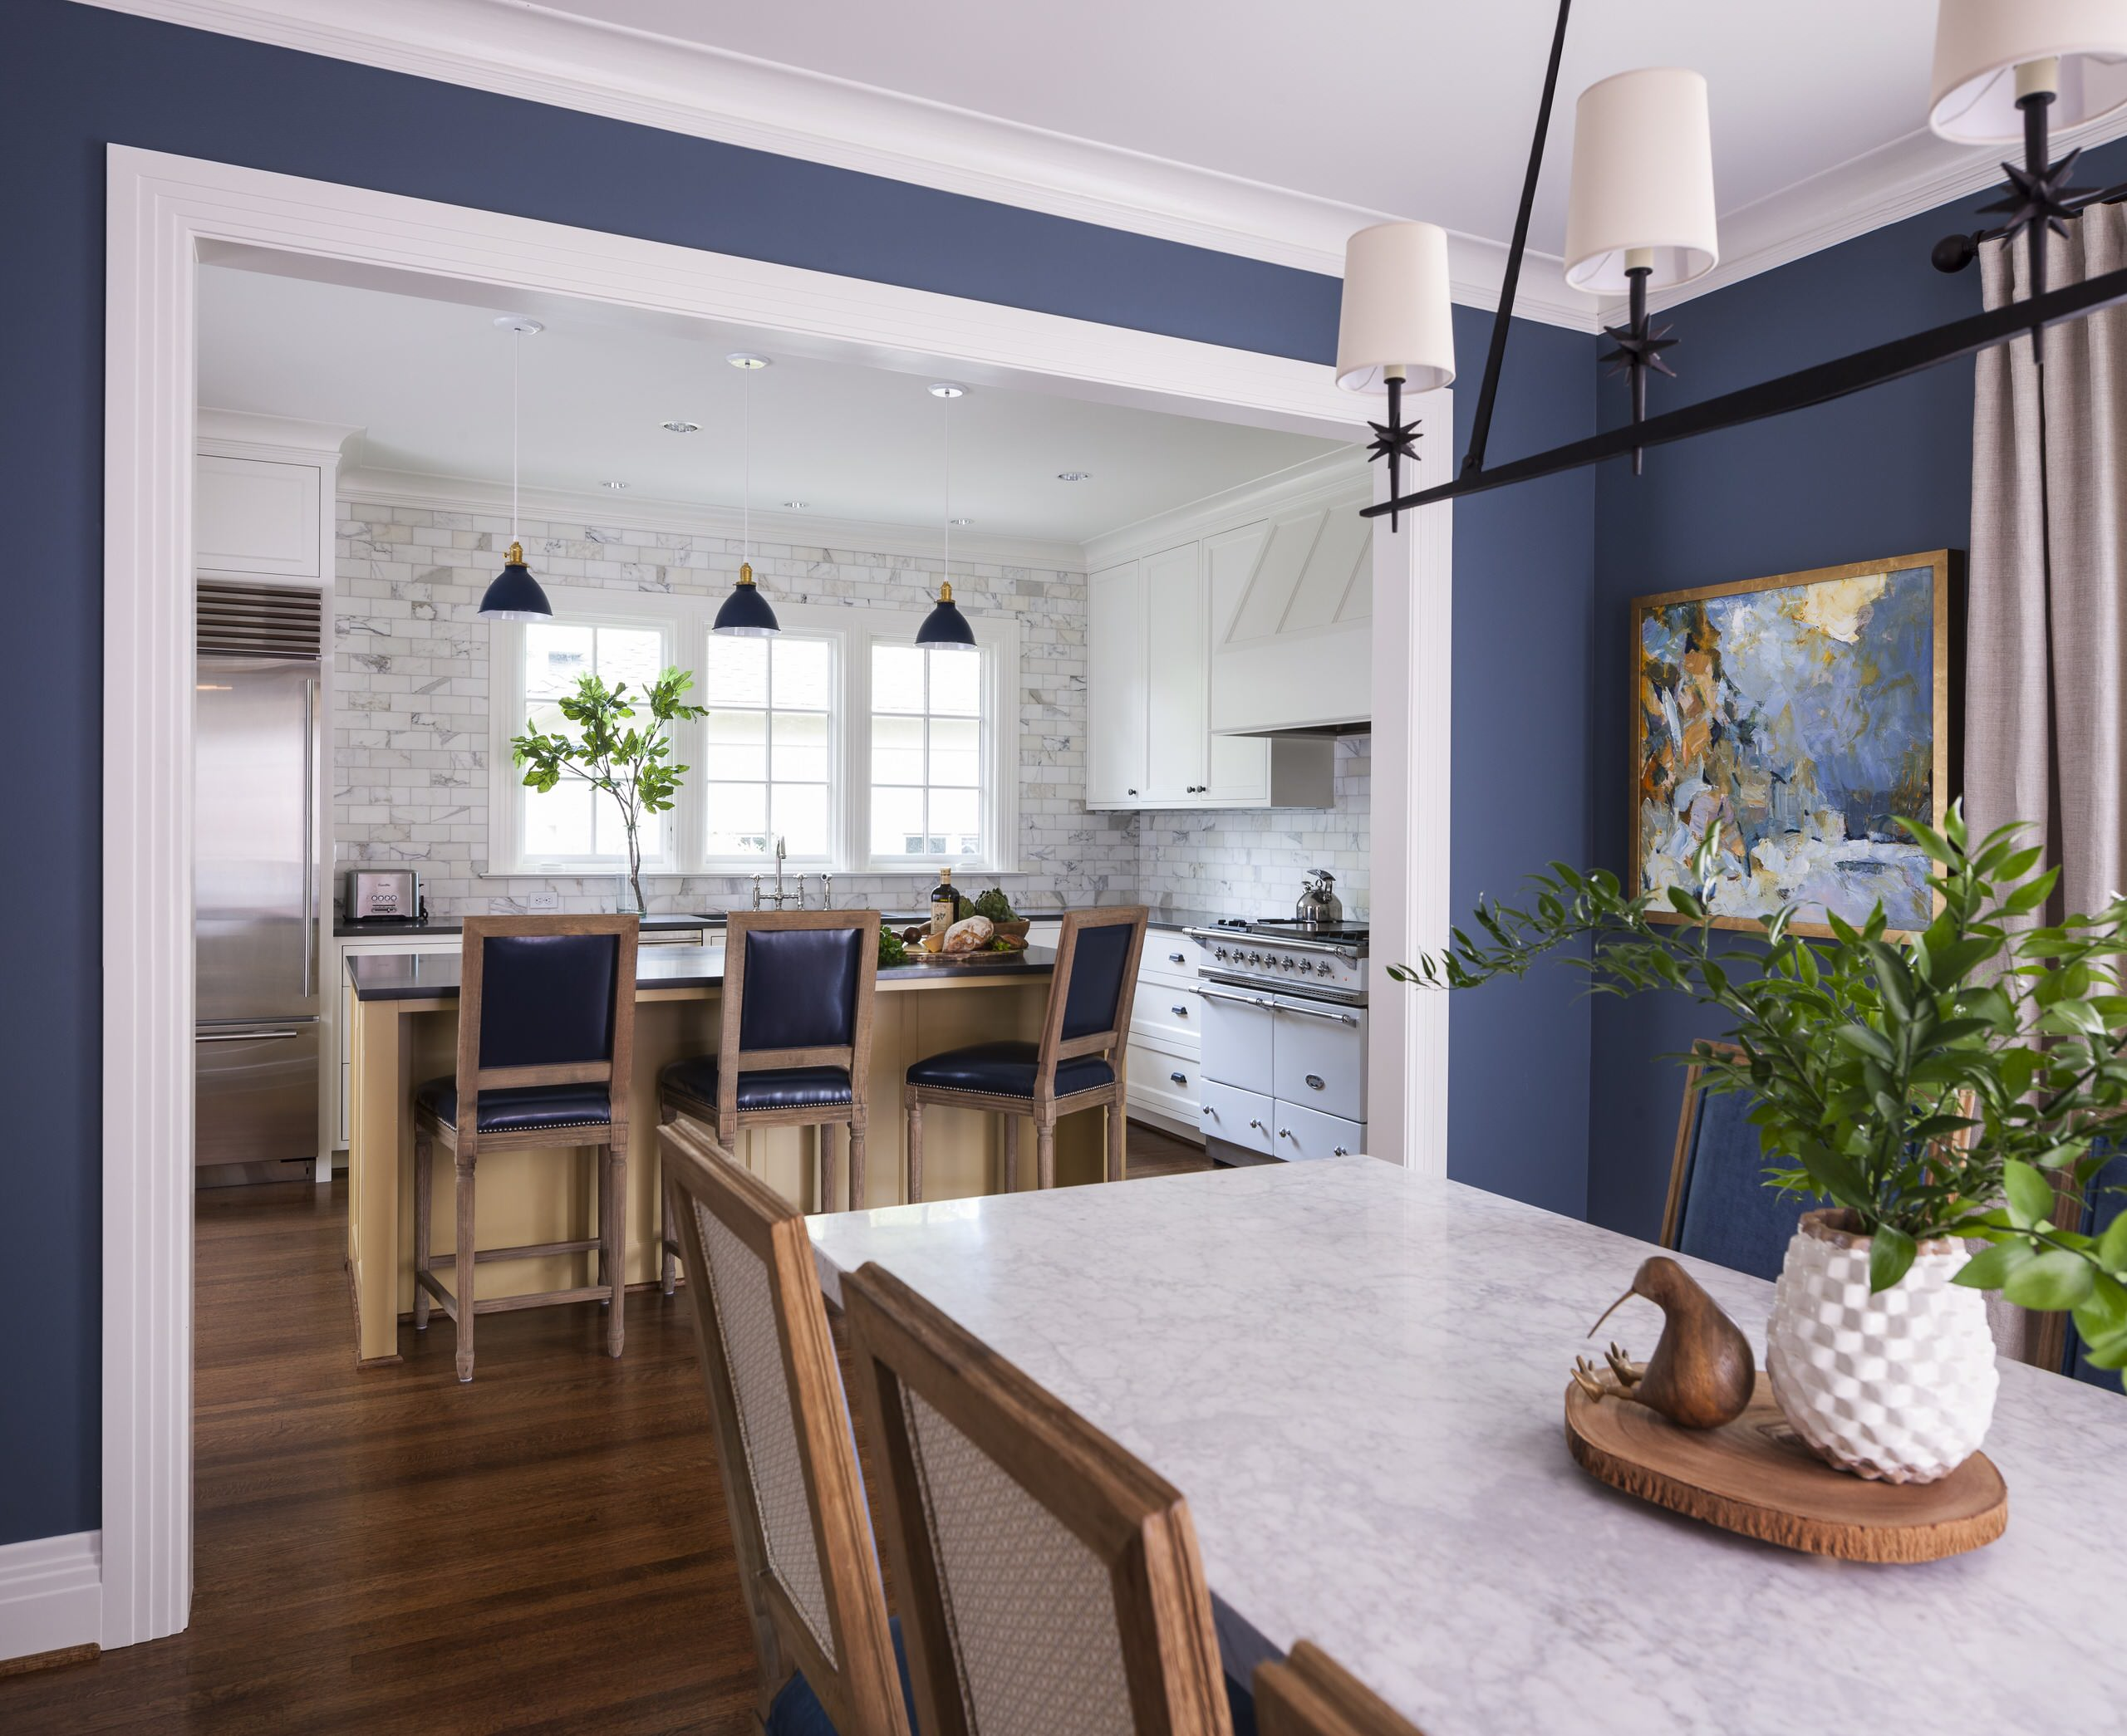 75 Beautiful Dining Room With Blue Walls Pictures Ideas December 2020 Houzz